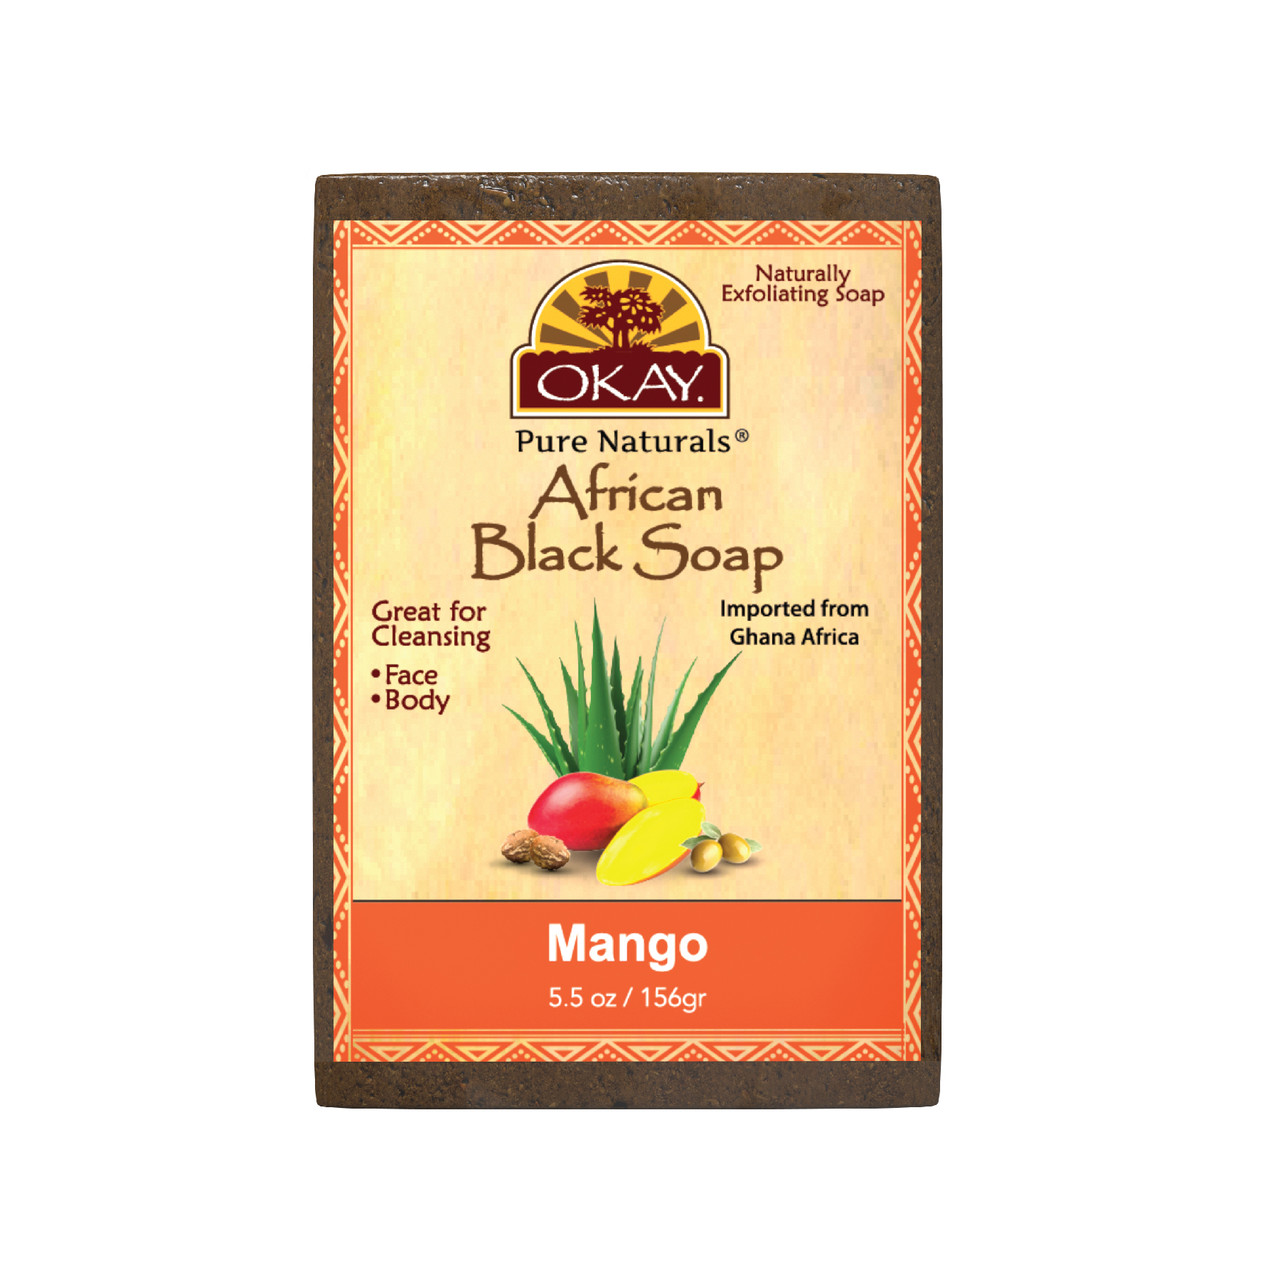 African Black Soap Mango Cleanses And Exfoliates Skin Anti